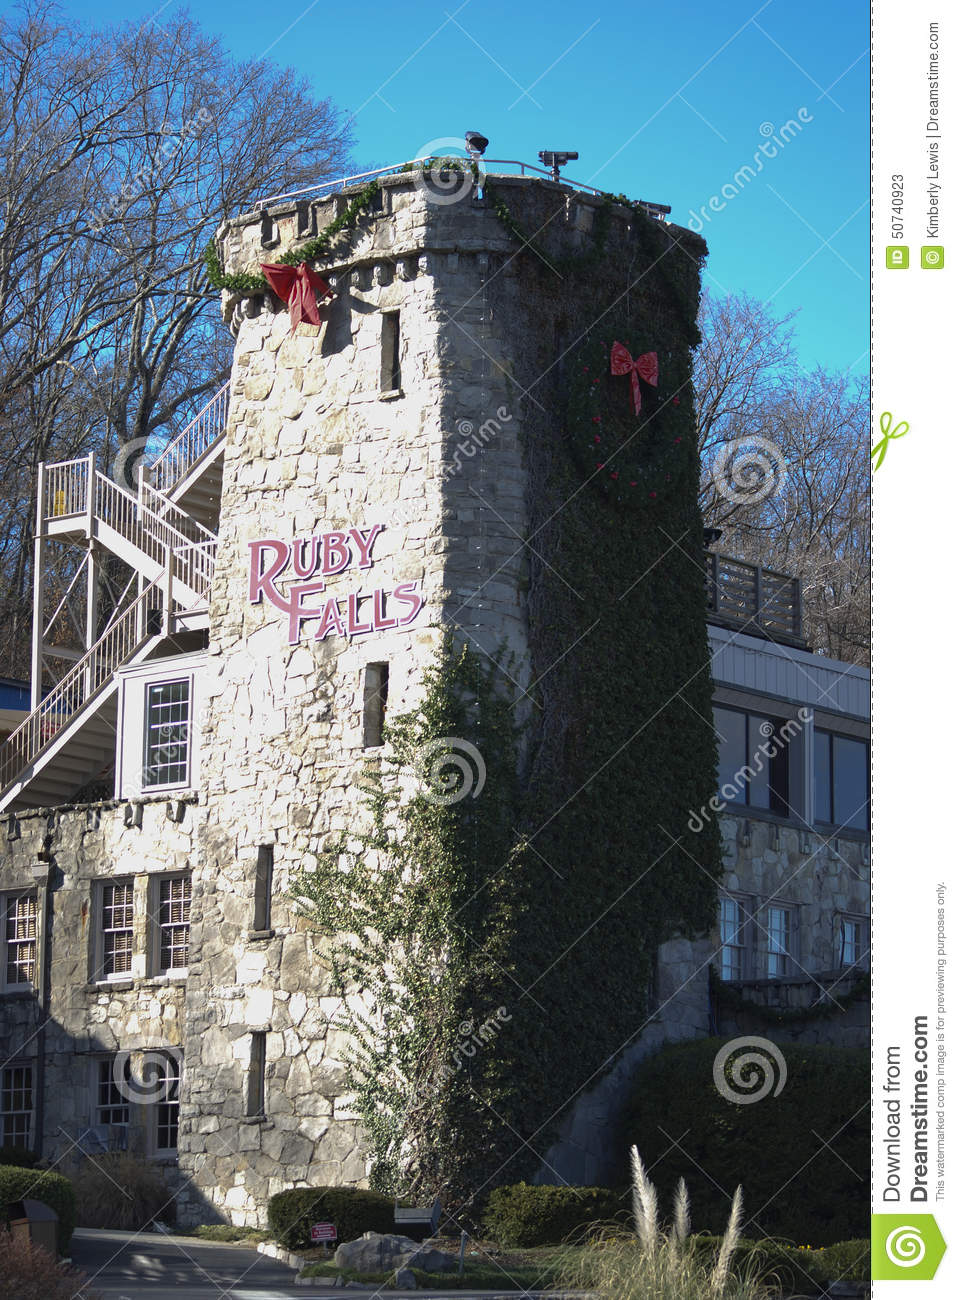 Christmas In Tennessee.Ruby Falls Sign On Stone At Christmas In Tennessee